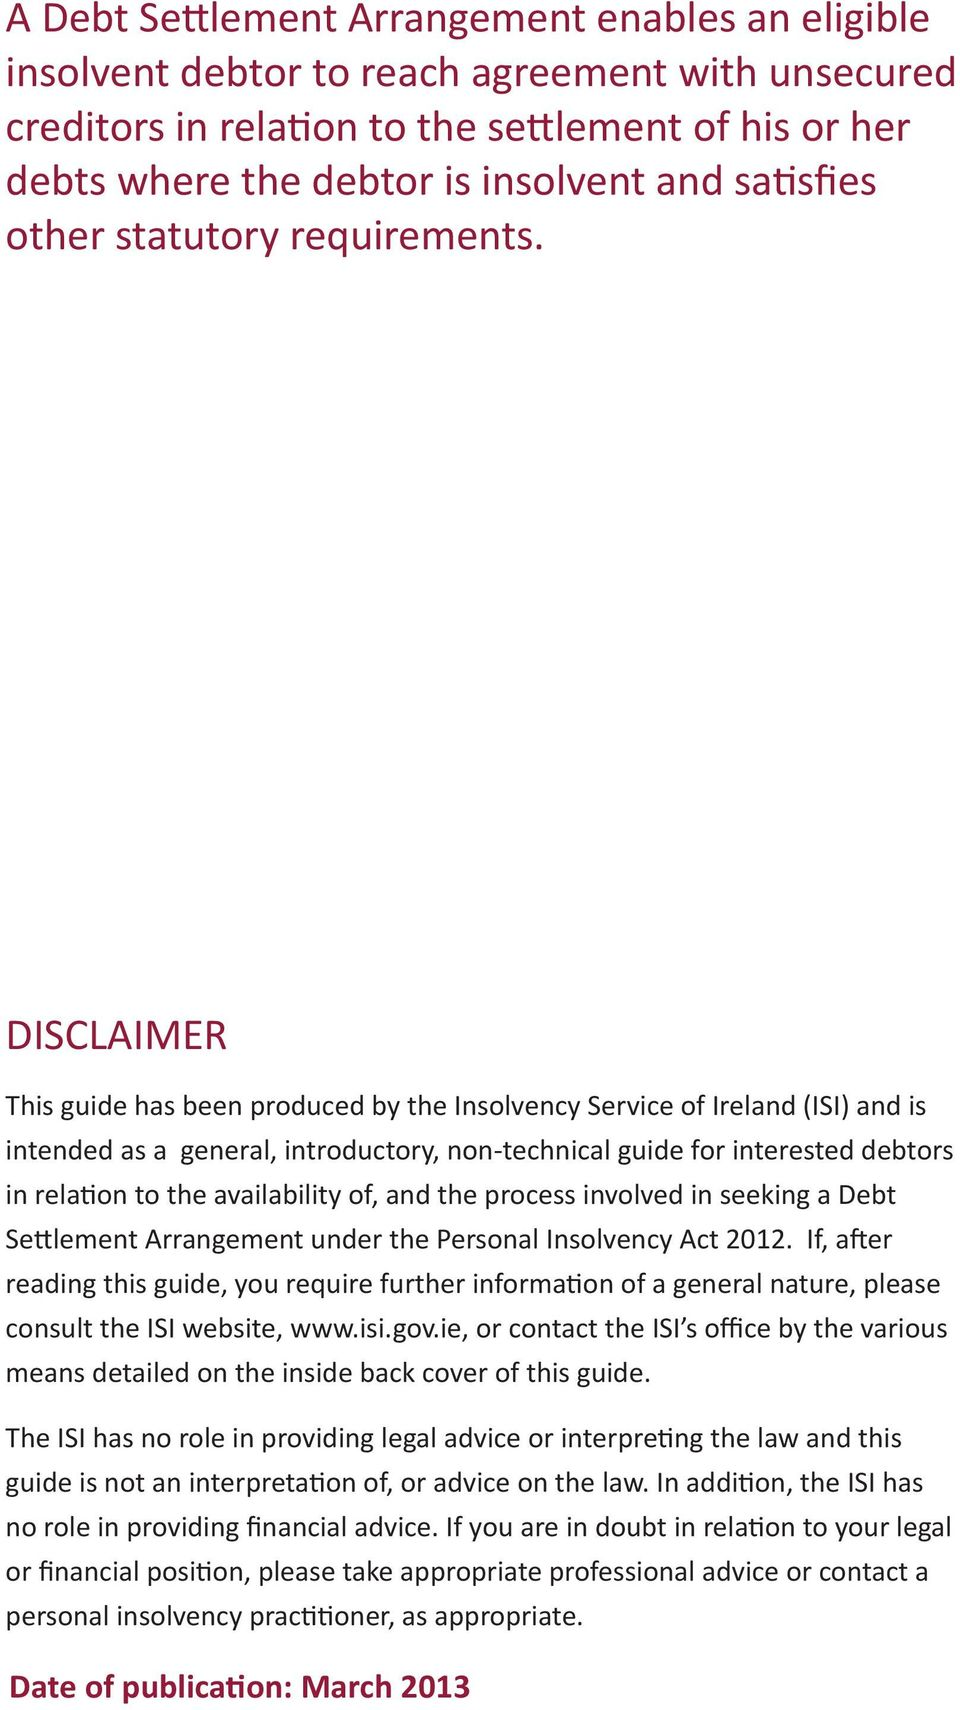 DISCLAIMER This guide has been produced by the Insolvency Service of Ireland (ISI) and is intended as a general, introductory, non-technical guide for interested debtors in relation to the